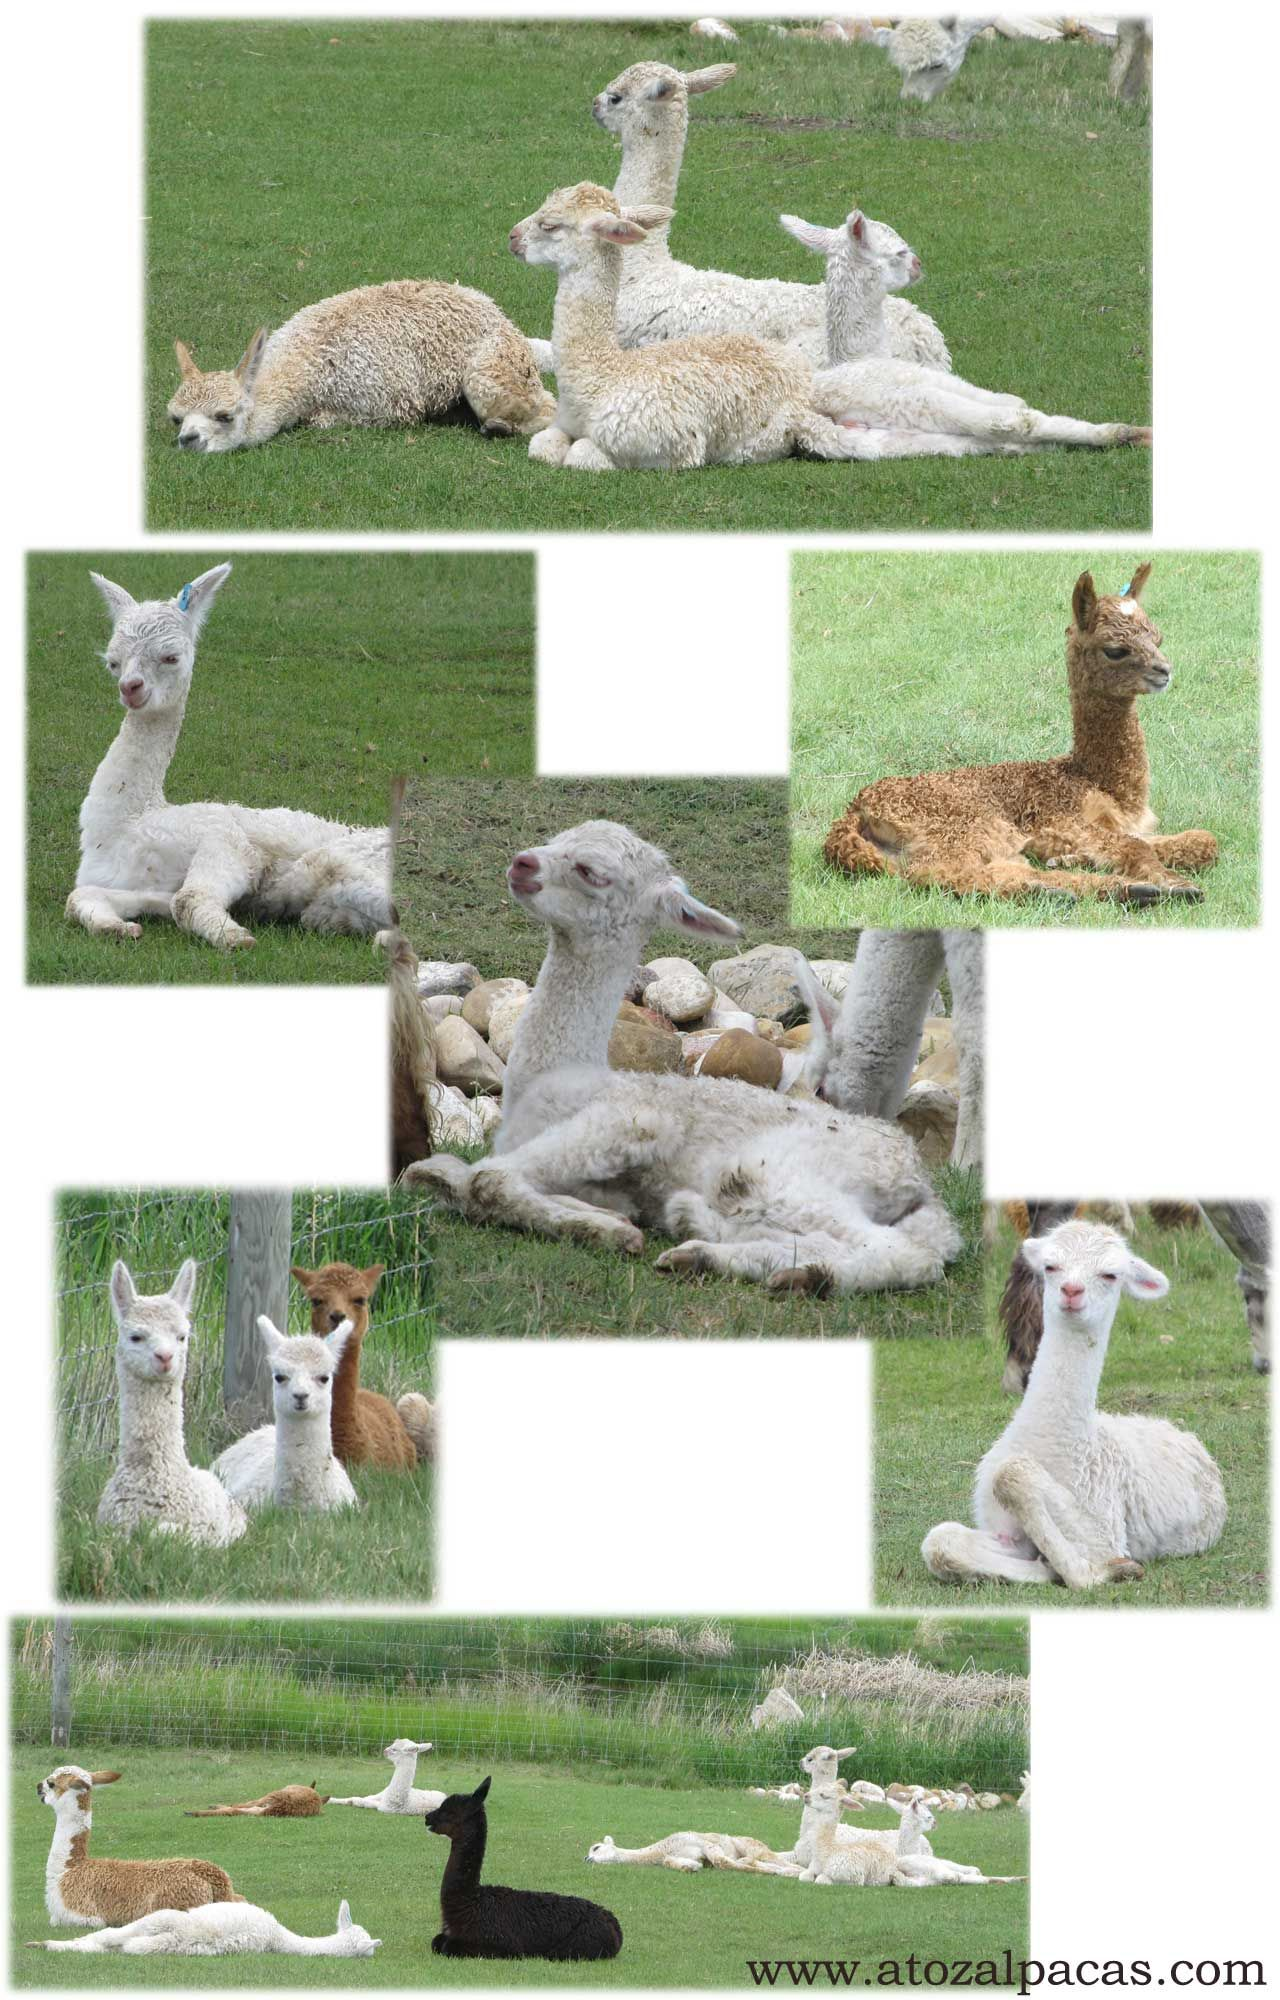 Baby Alpacas snoozing in the sun after a long run in the